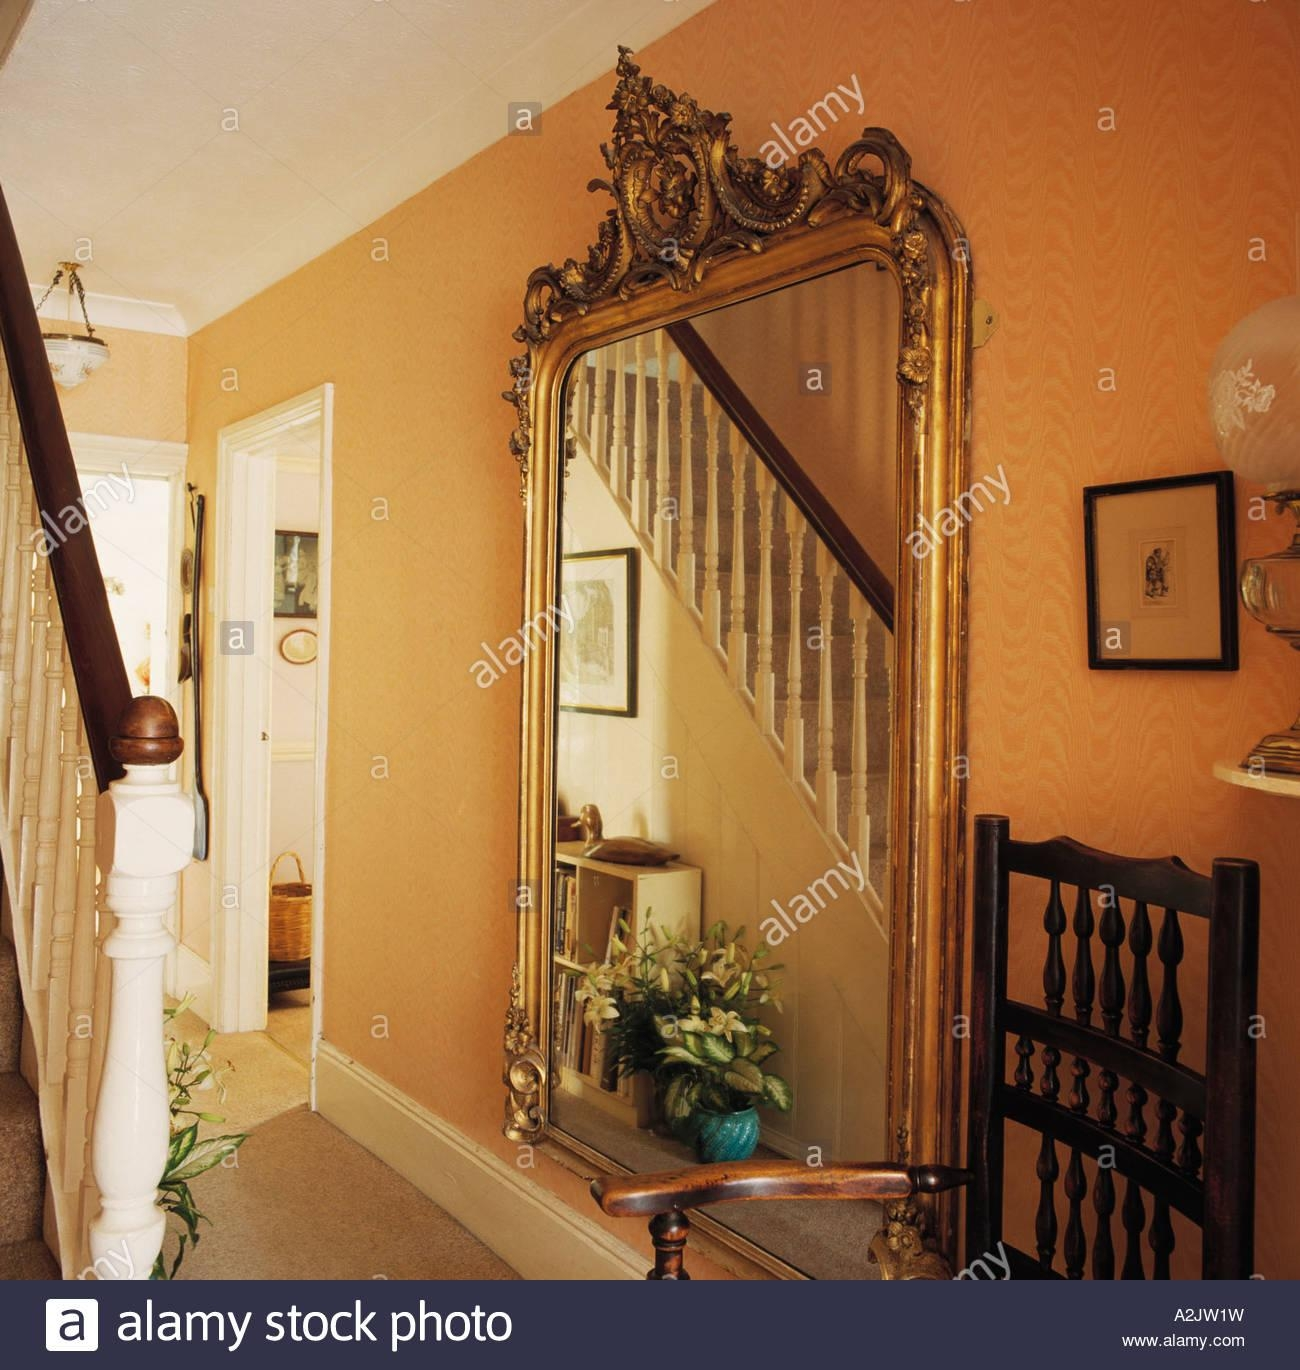 Large Gilt Mirror In Yellow Hall Stock Photo, Royalty Free Image Intended For Large Gilt Mirror (Image 11 of 20)